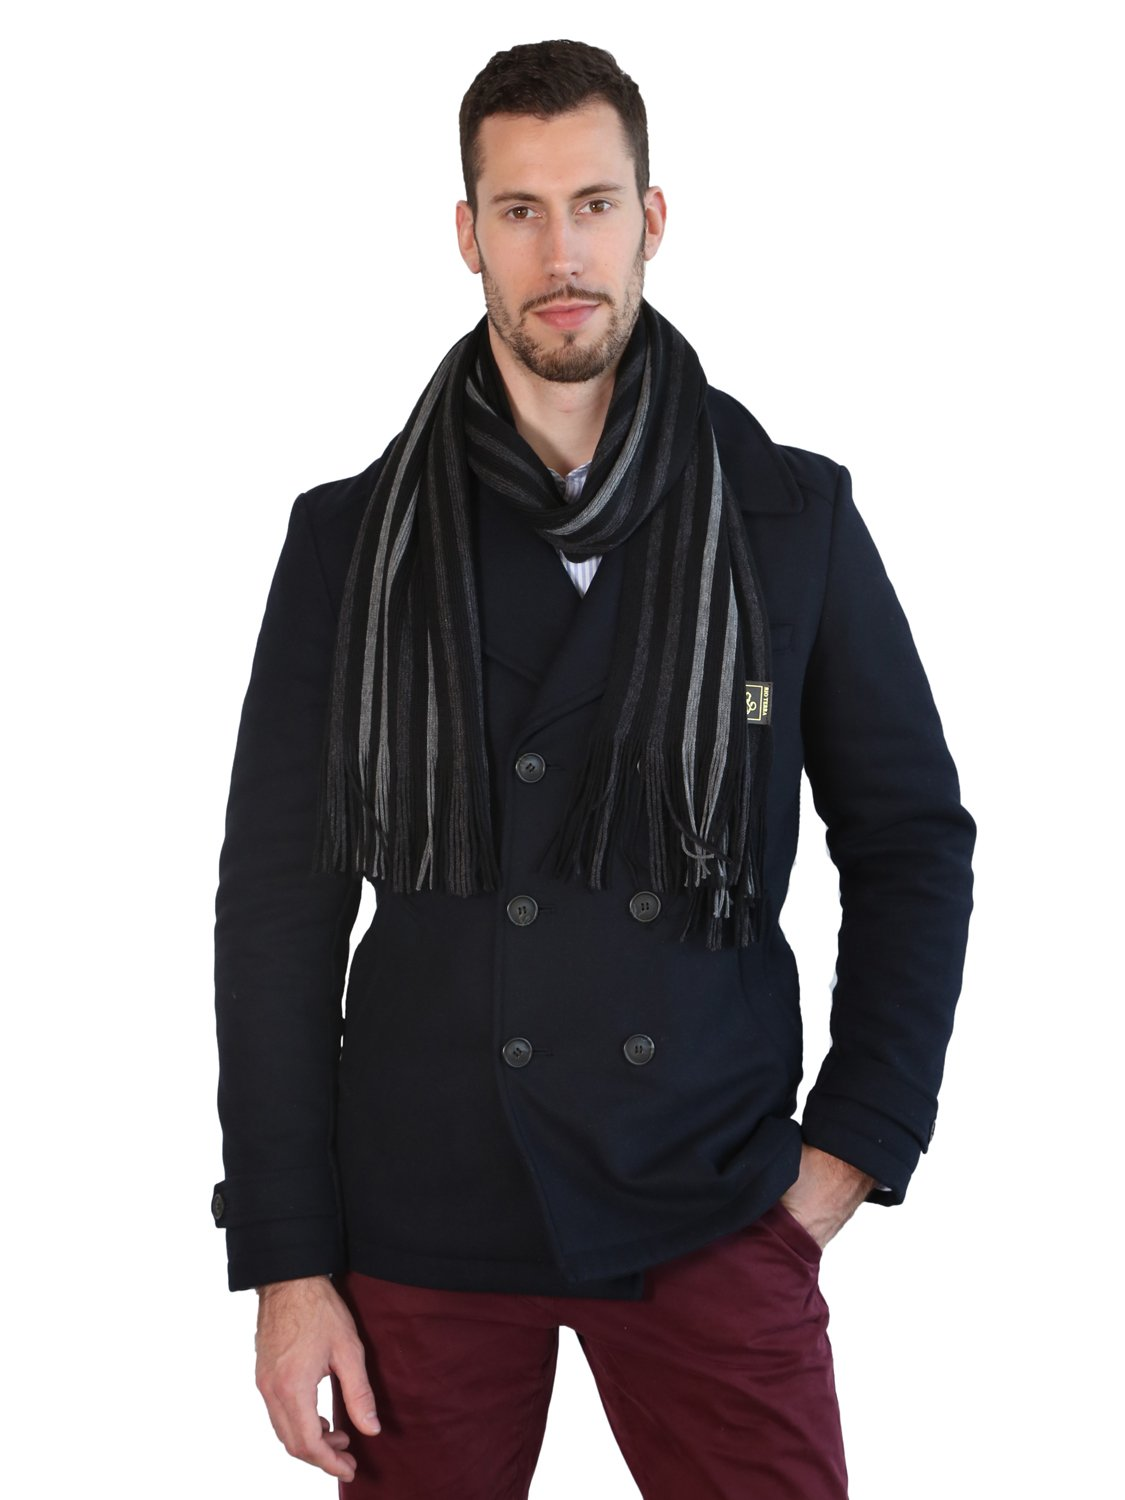 Rio Terra Men's Knitted Scarf, Designer Scarves for Winter Fall Fashion, Silver & Grey by Rio Terra (Image #7)